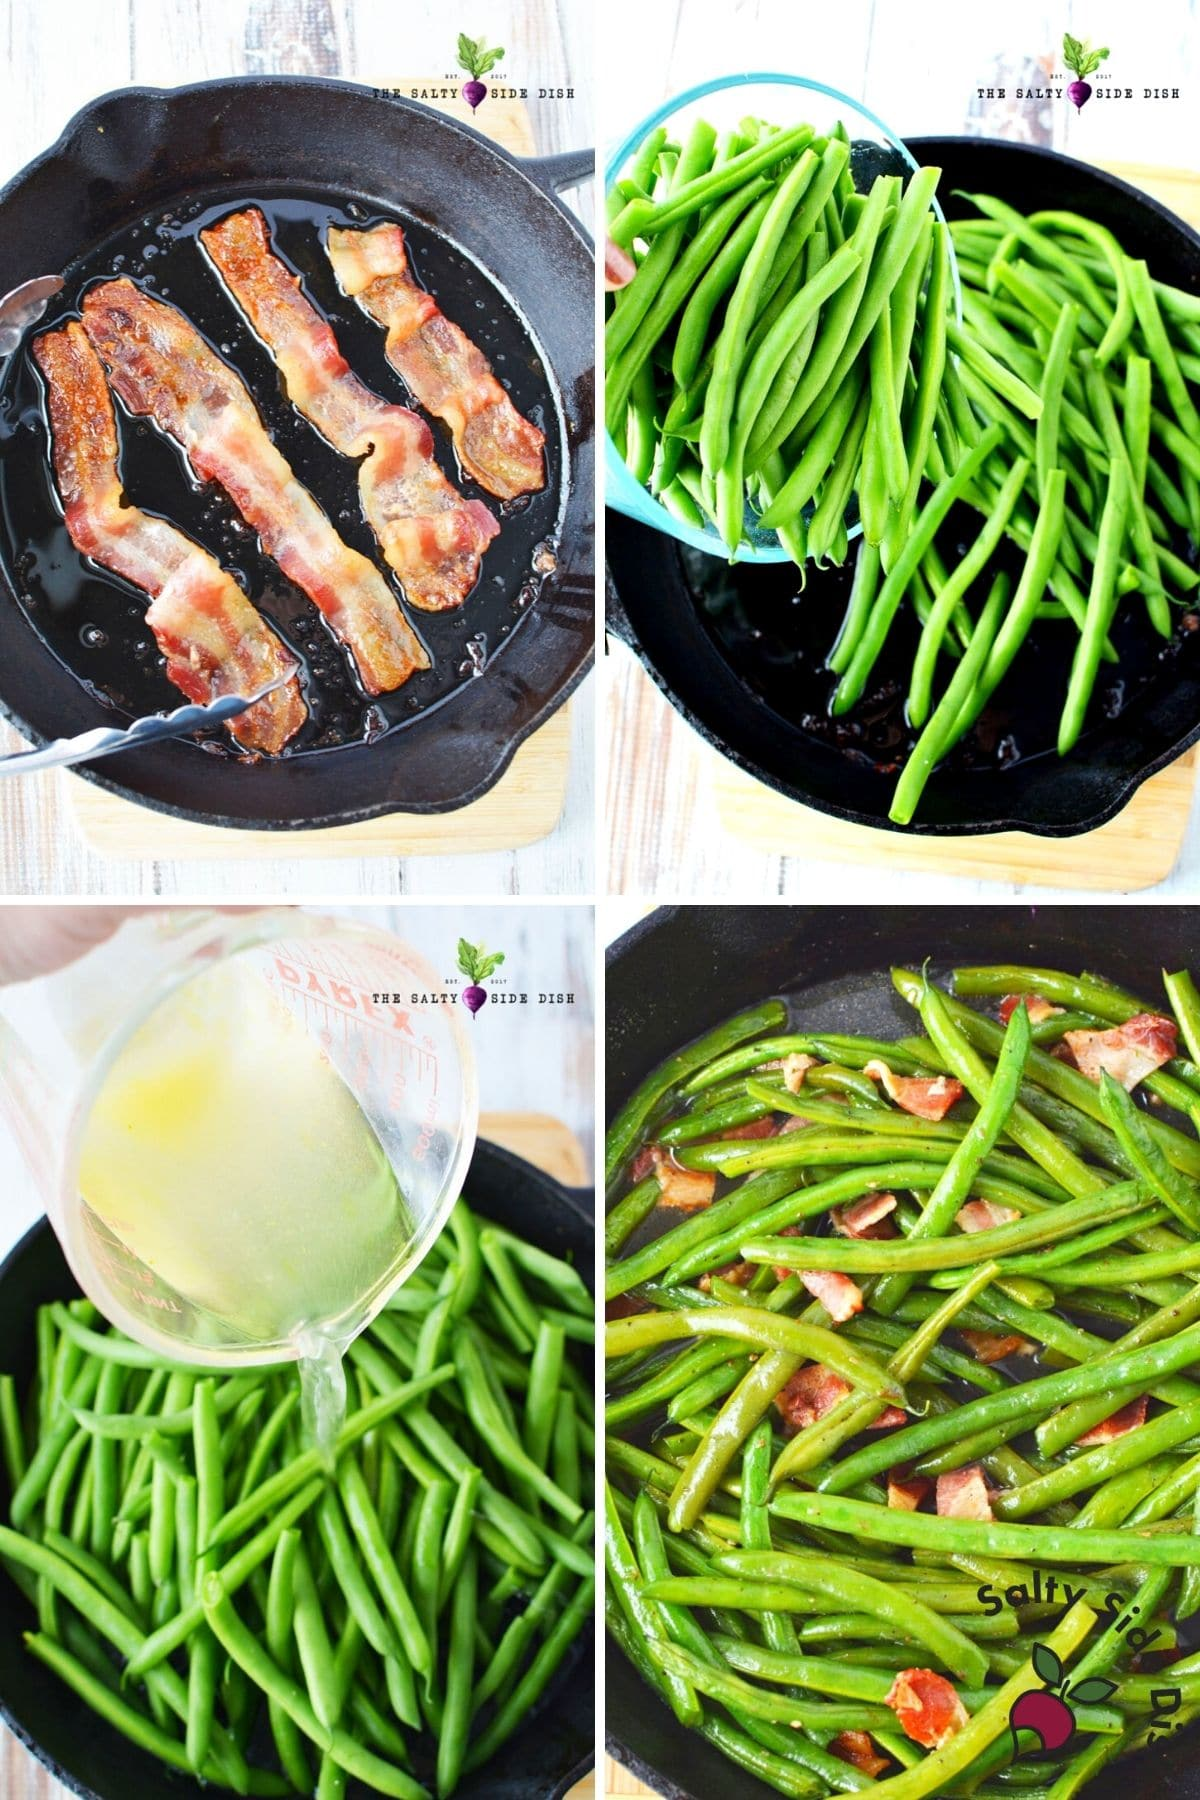 making bacon and adding sauteed green beans